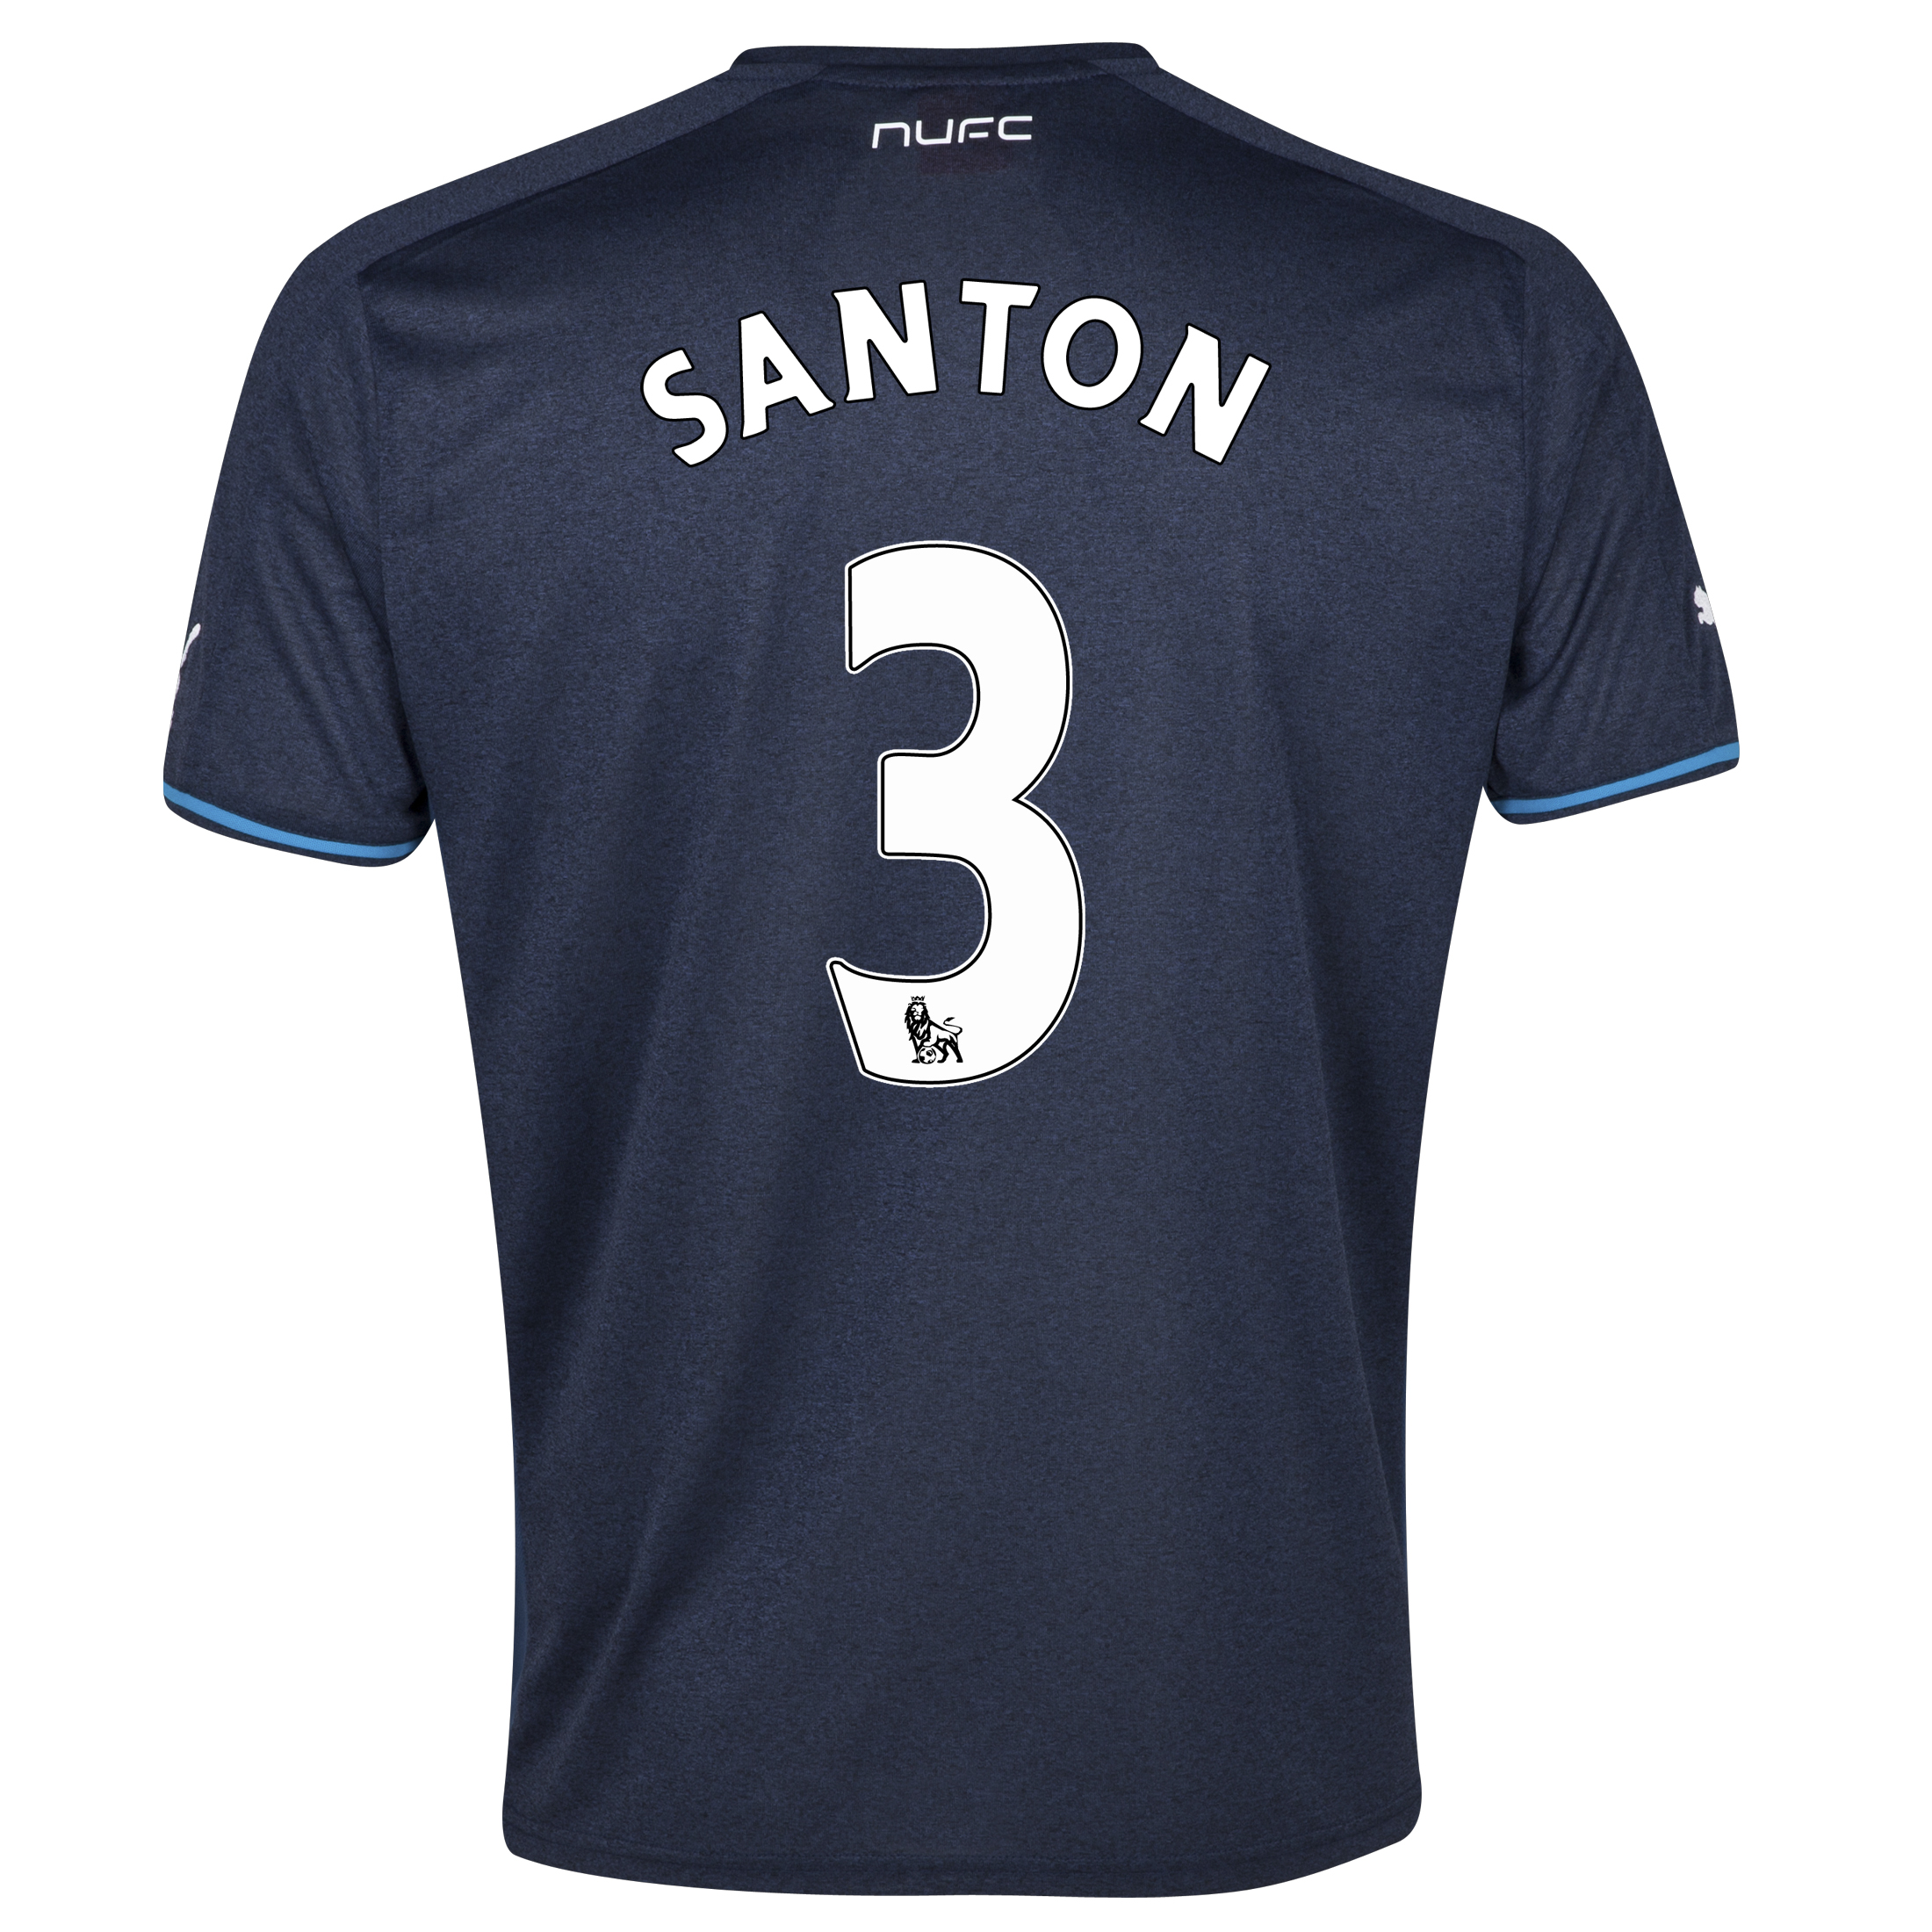 Newcastle United Away Shirt 2013/14 - kids with Santon 3 printing